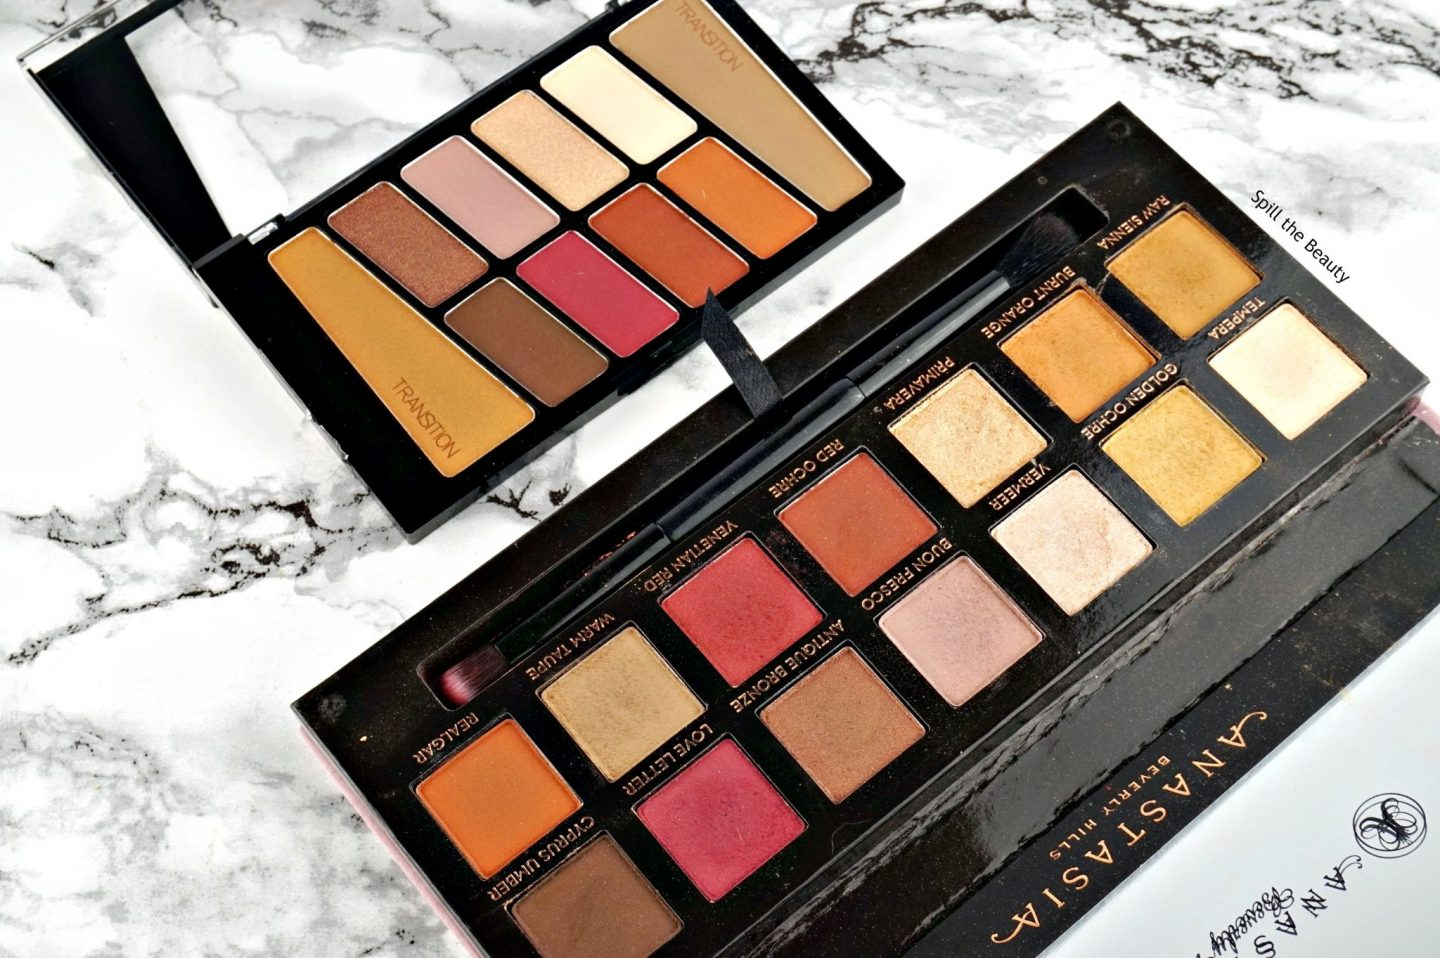 Wet n Wild 'Rosé In The Air' Eyeshadow Palette – Review, Look, and Comparison Swatches (to Anastasia Beverly Hills 'Modern Renaissance')